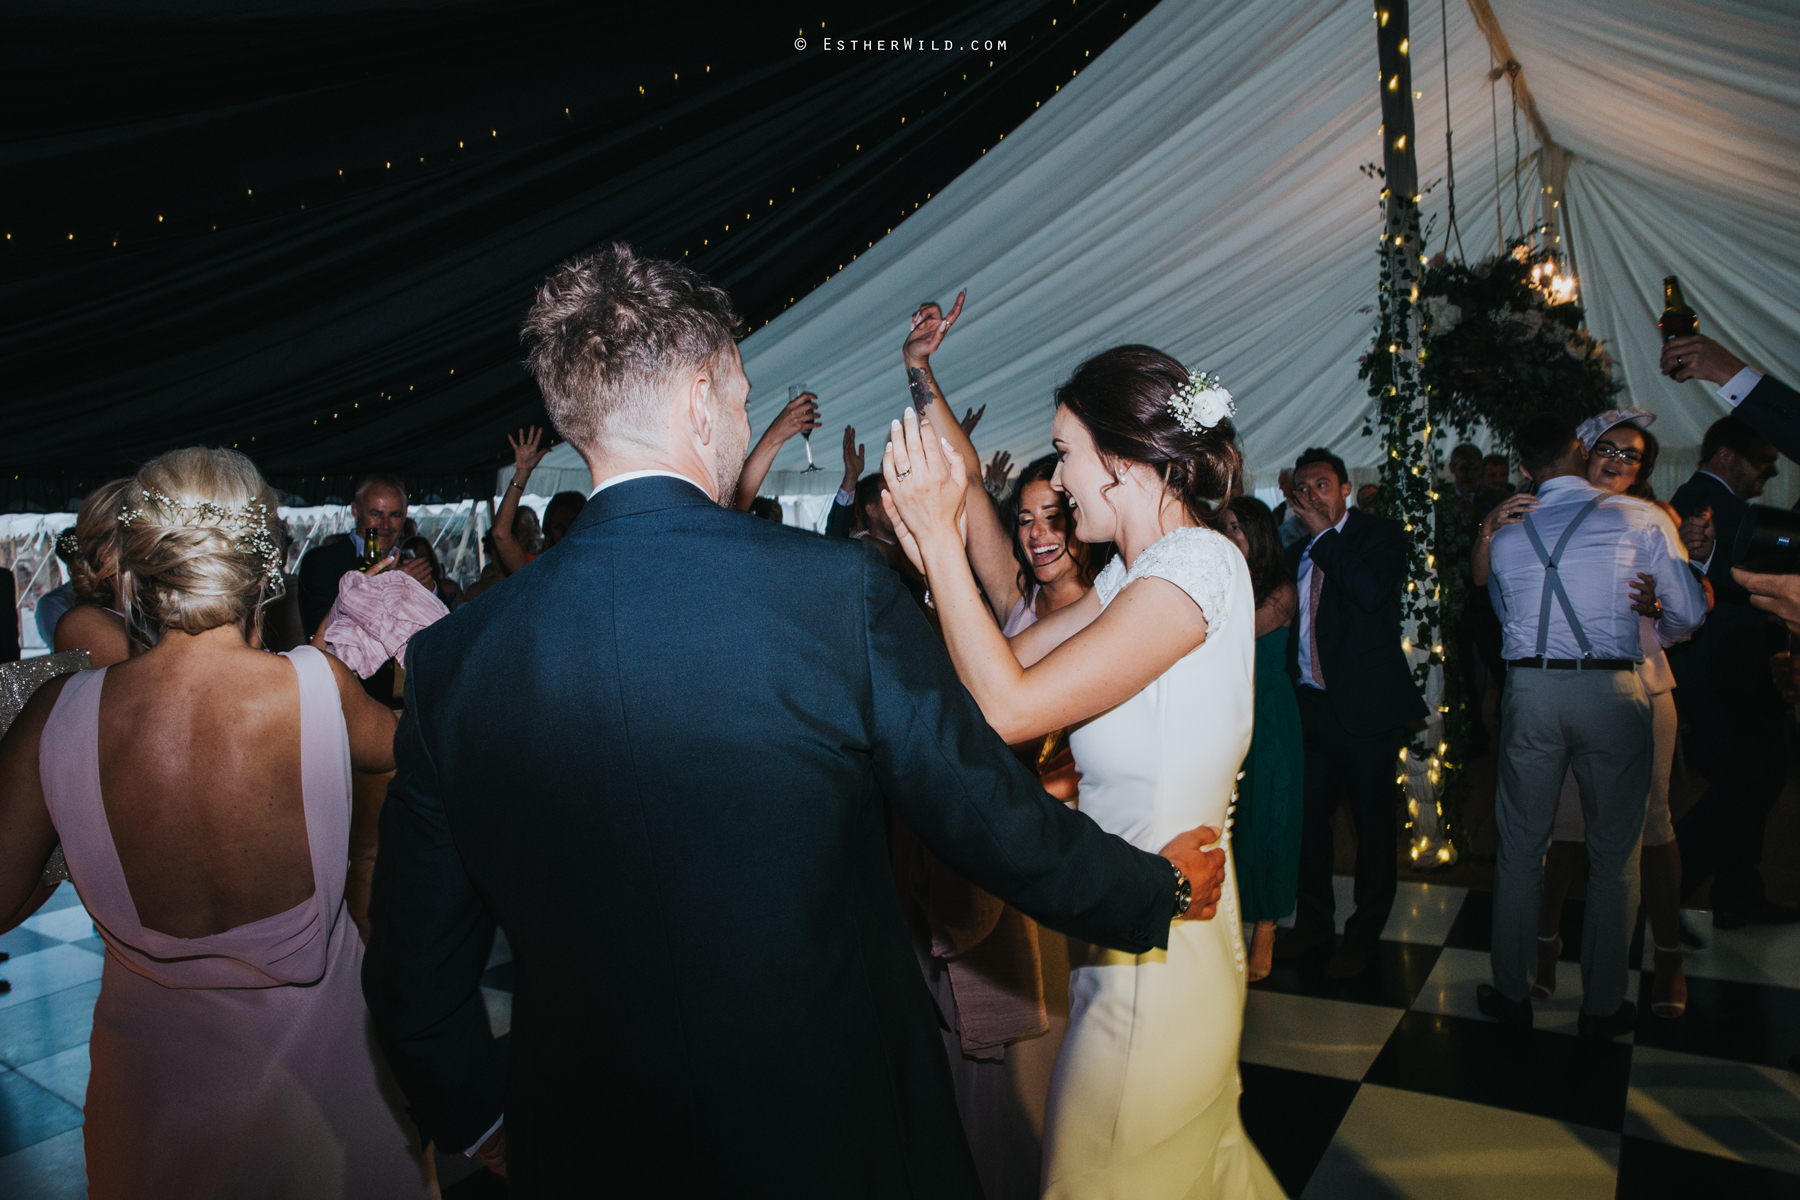 Wootton_Wedding_Copyright_Esther_Wild_Photographer_IMG_3283.jpg